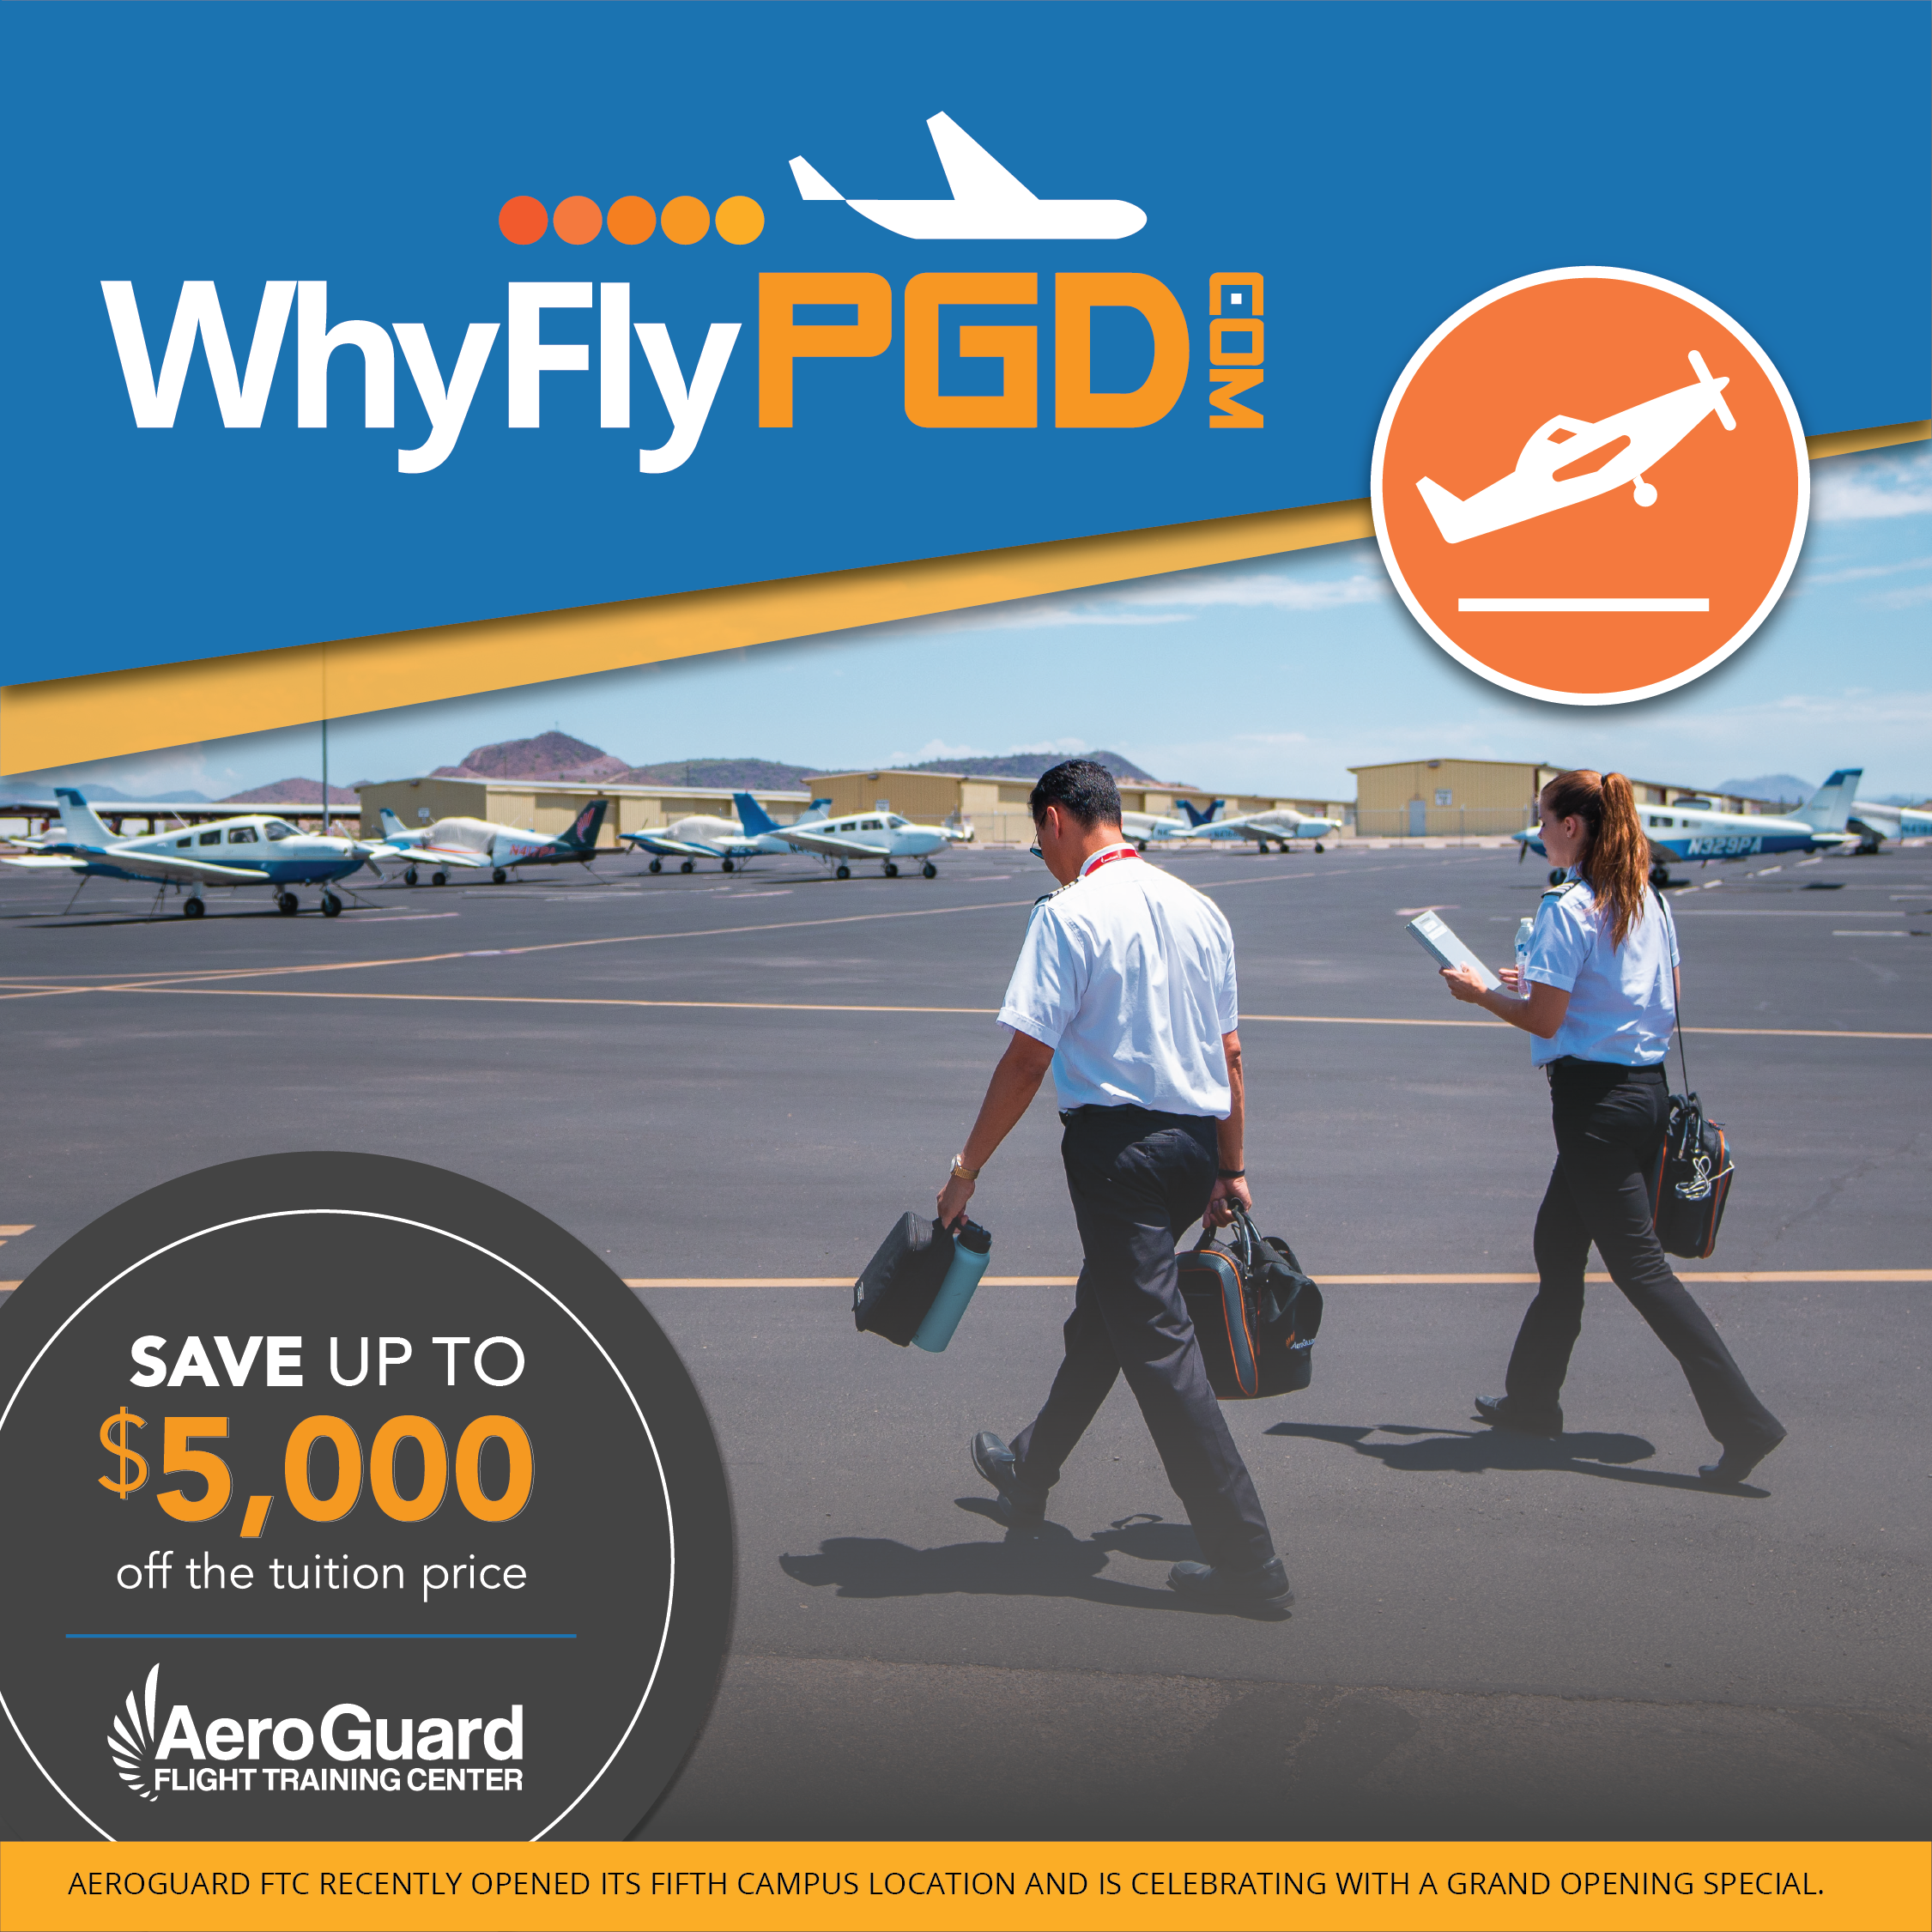 Why Fly PGD Advertisement for AeroGuard Flight Training Center's grand opening special